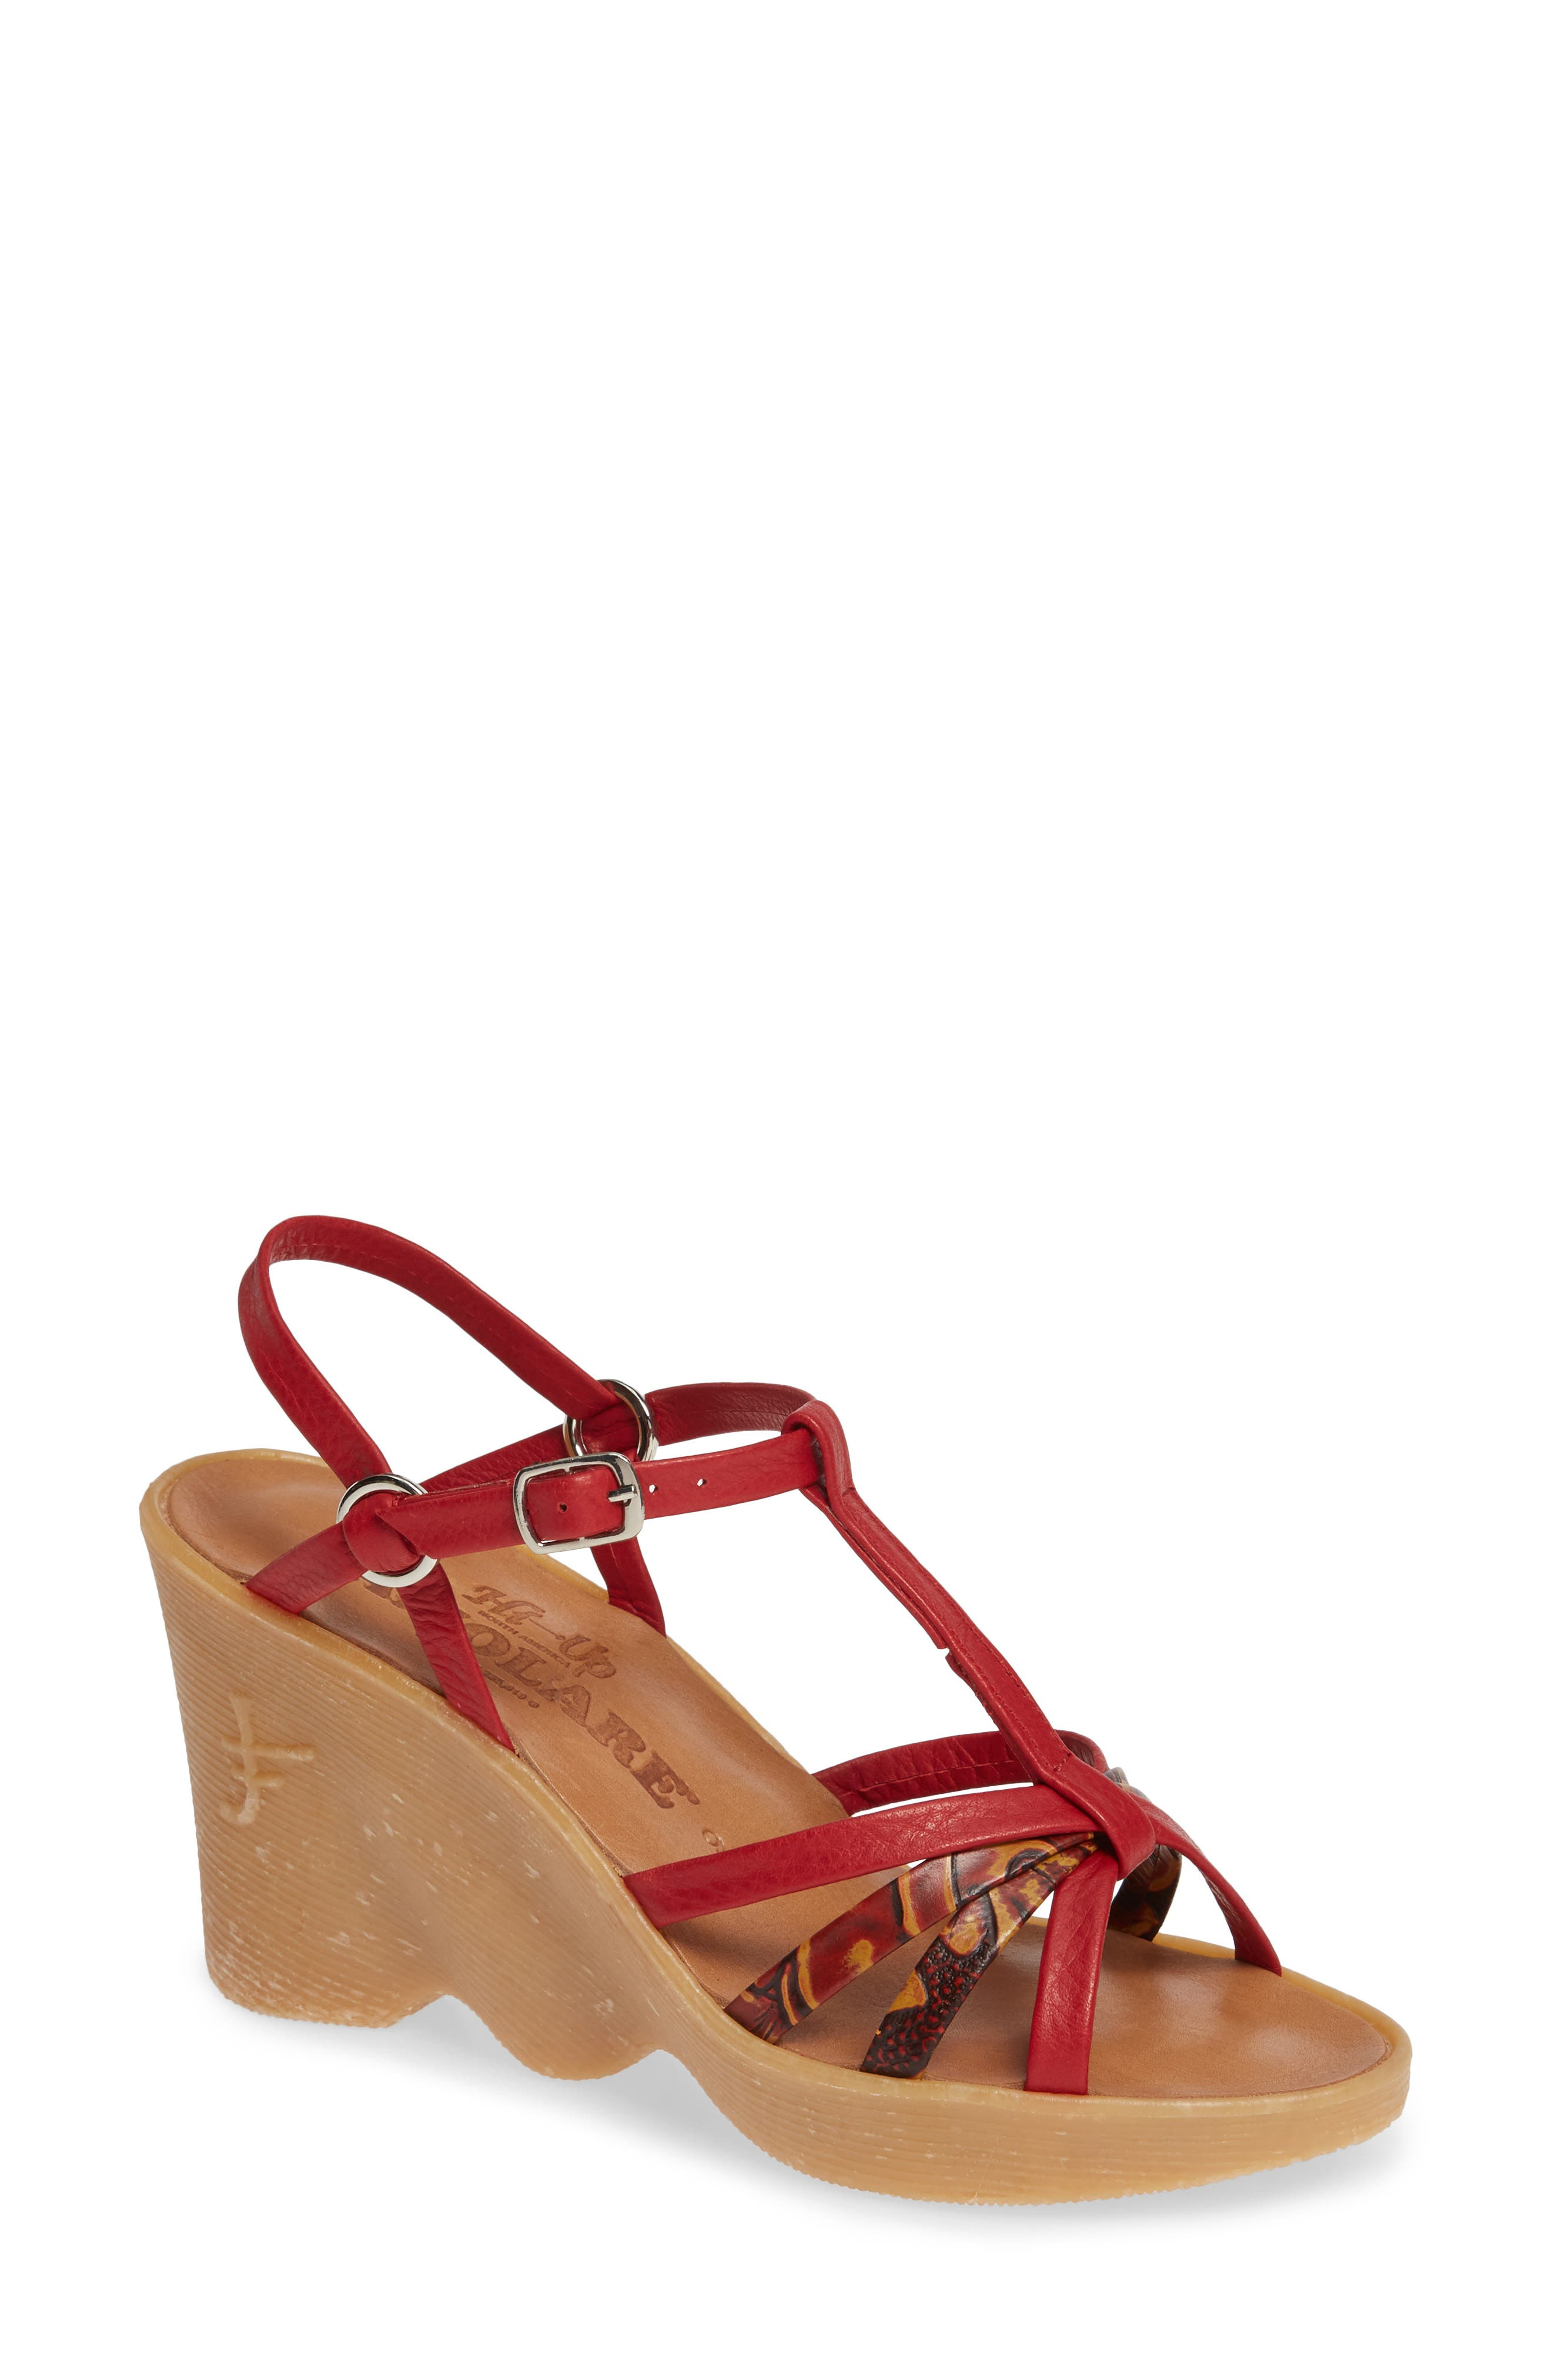 FAMOLARE To a Tee Wedge Sandal, Main, color, CORAL LEATHER